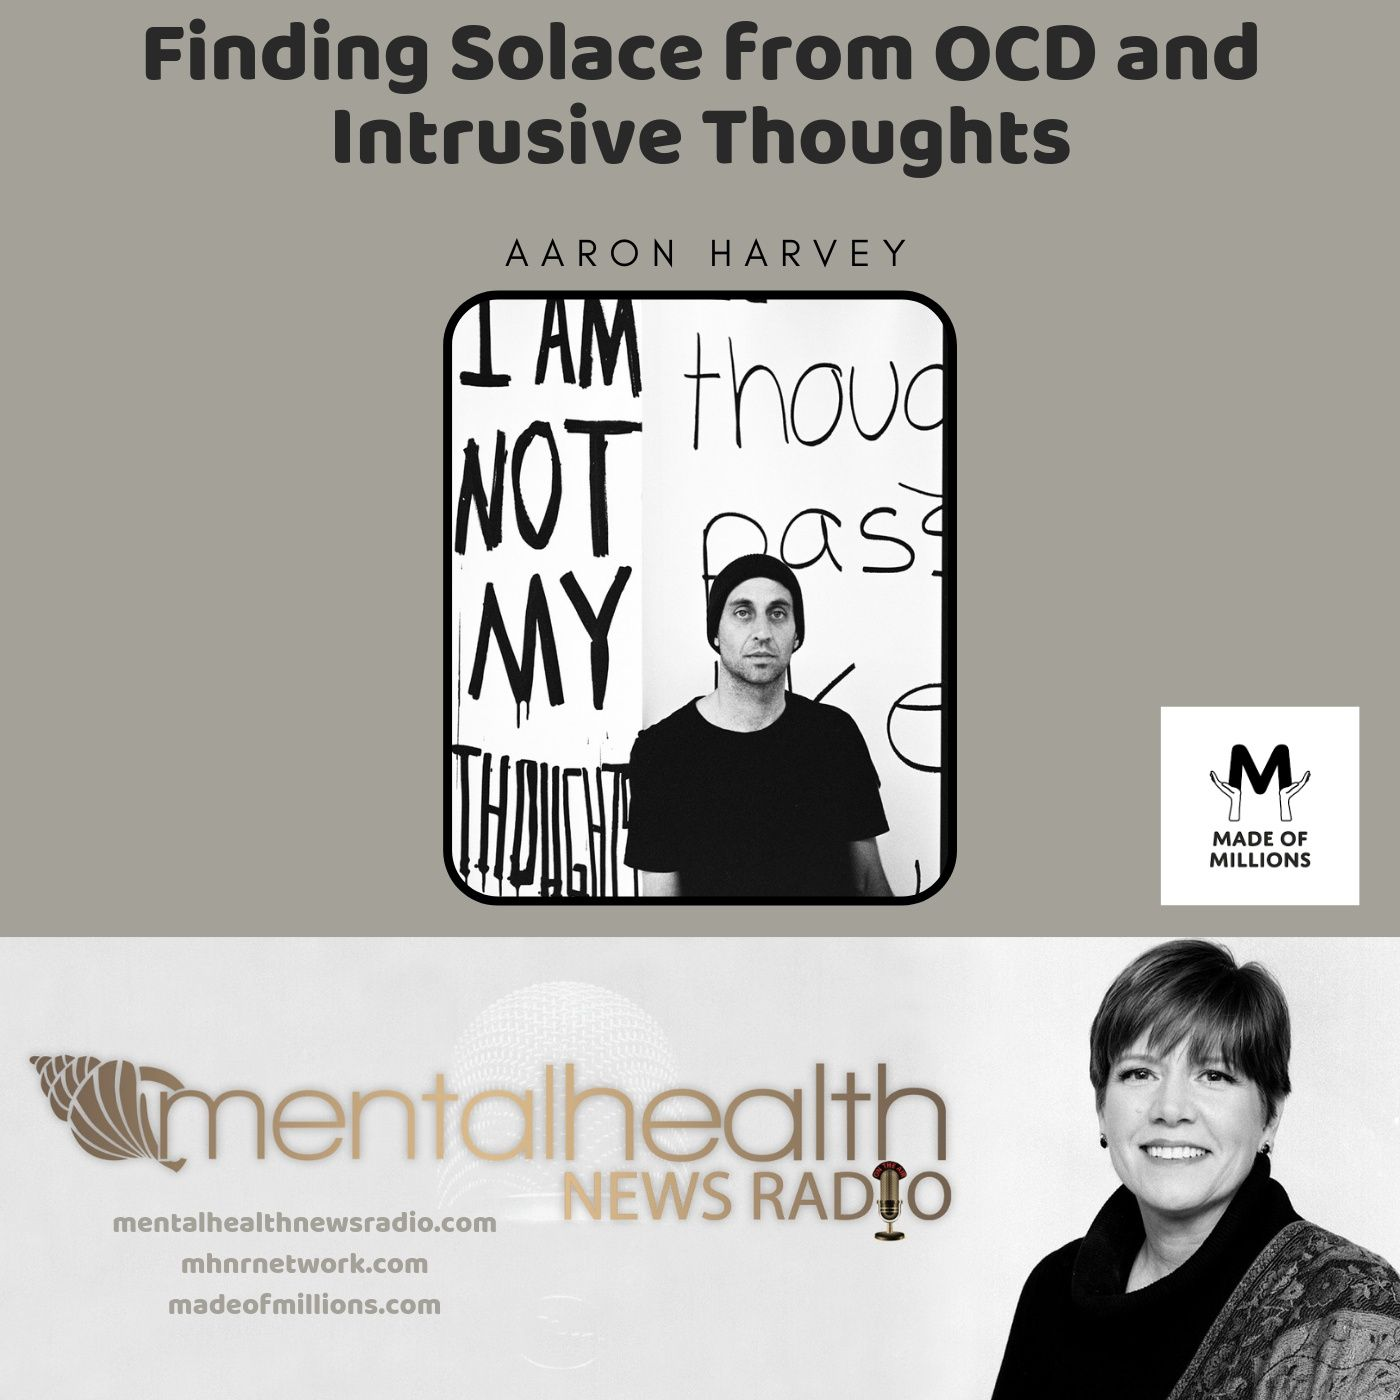 Mental Health News Radio - Made of Millions: Finding Solace from OCD and Intrusive Thoughts